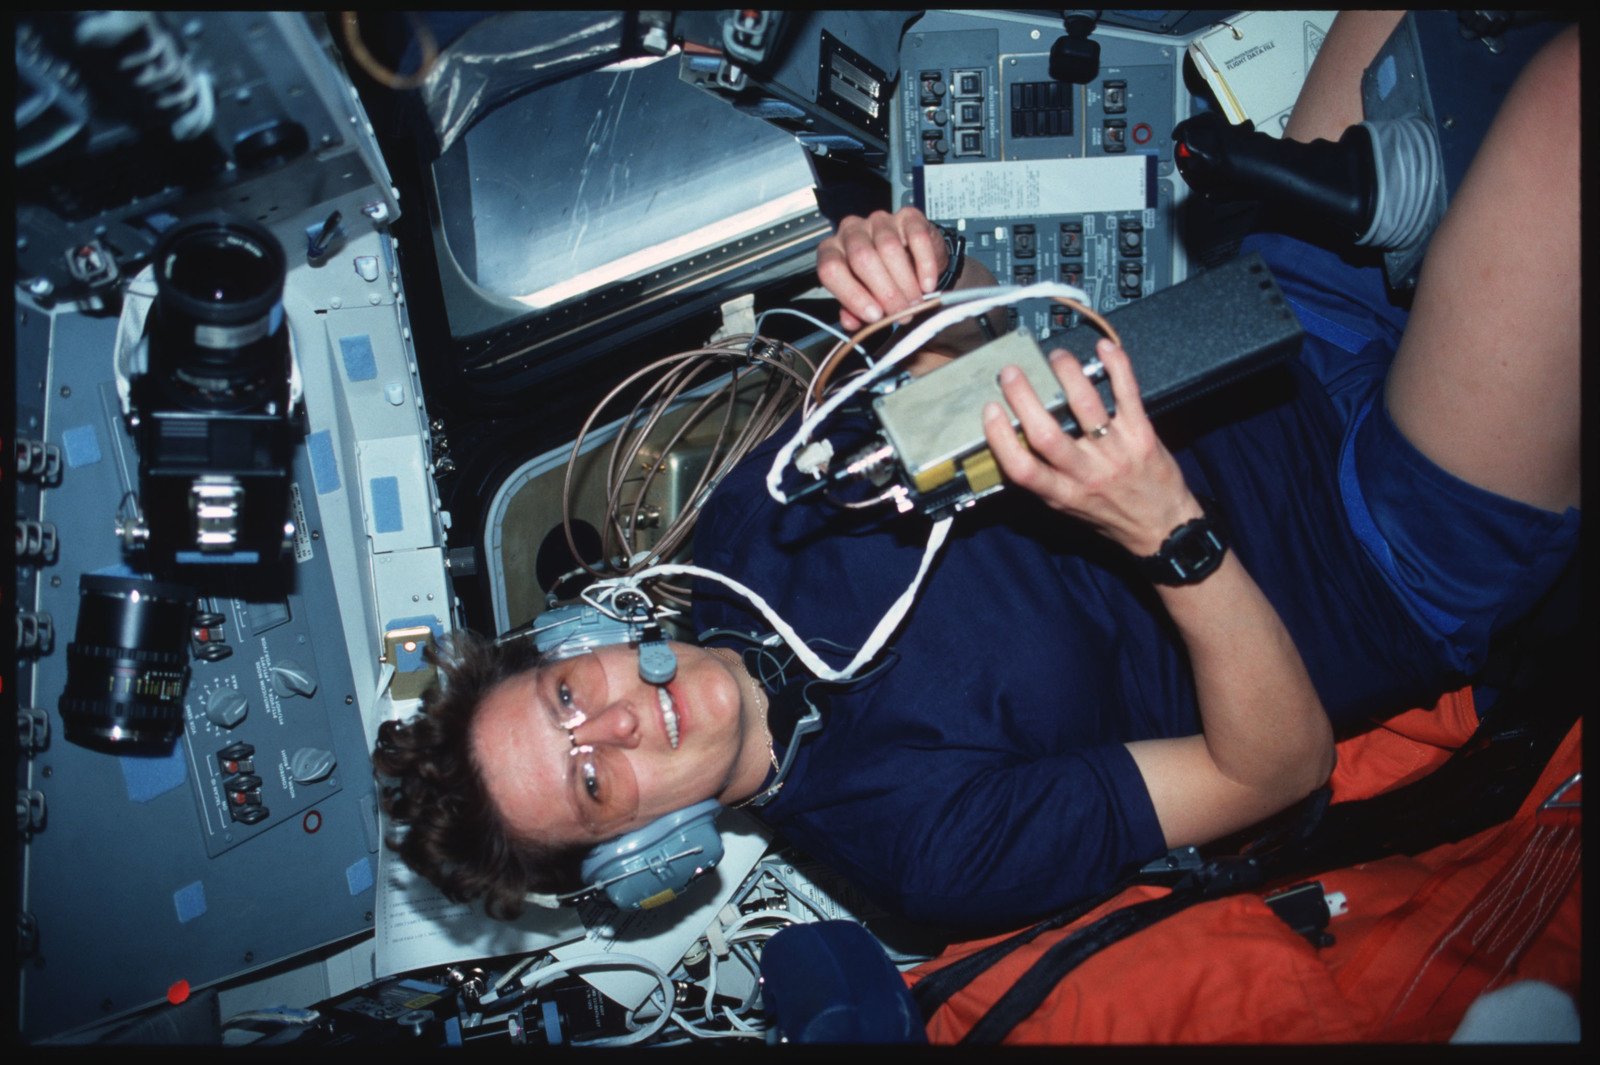 S45-13-022 - STS-045 - STS-45 crewmembers engage in various activities